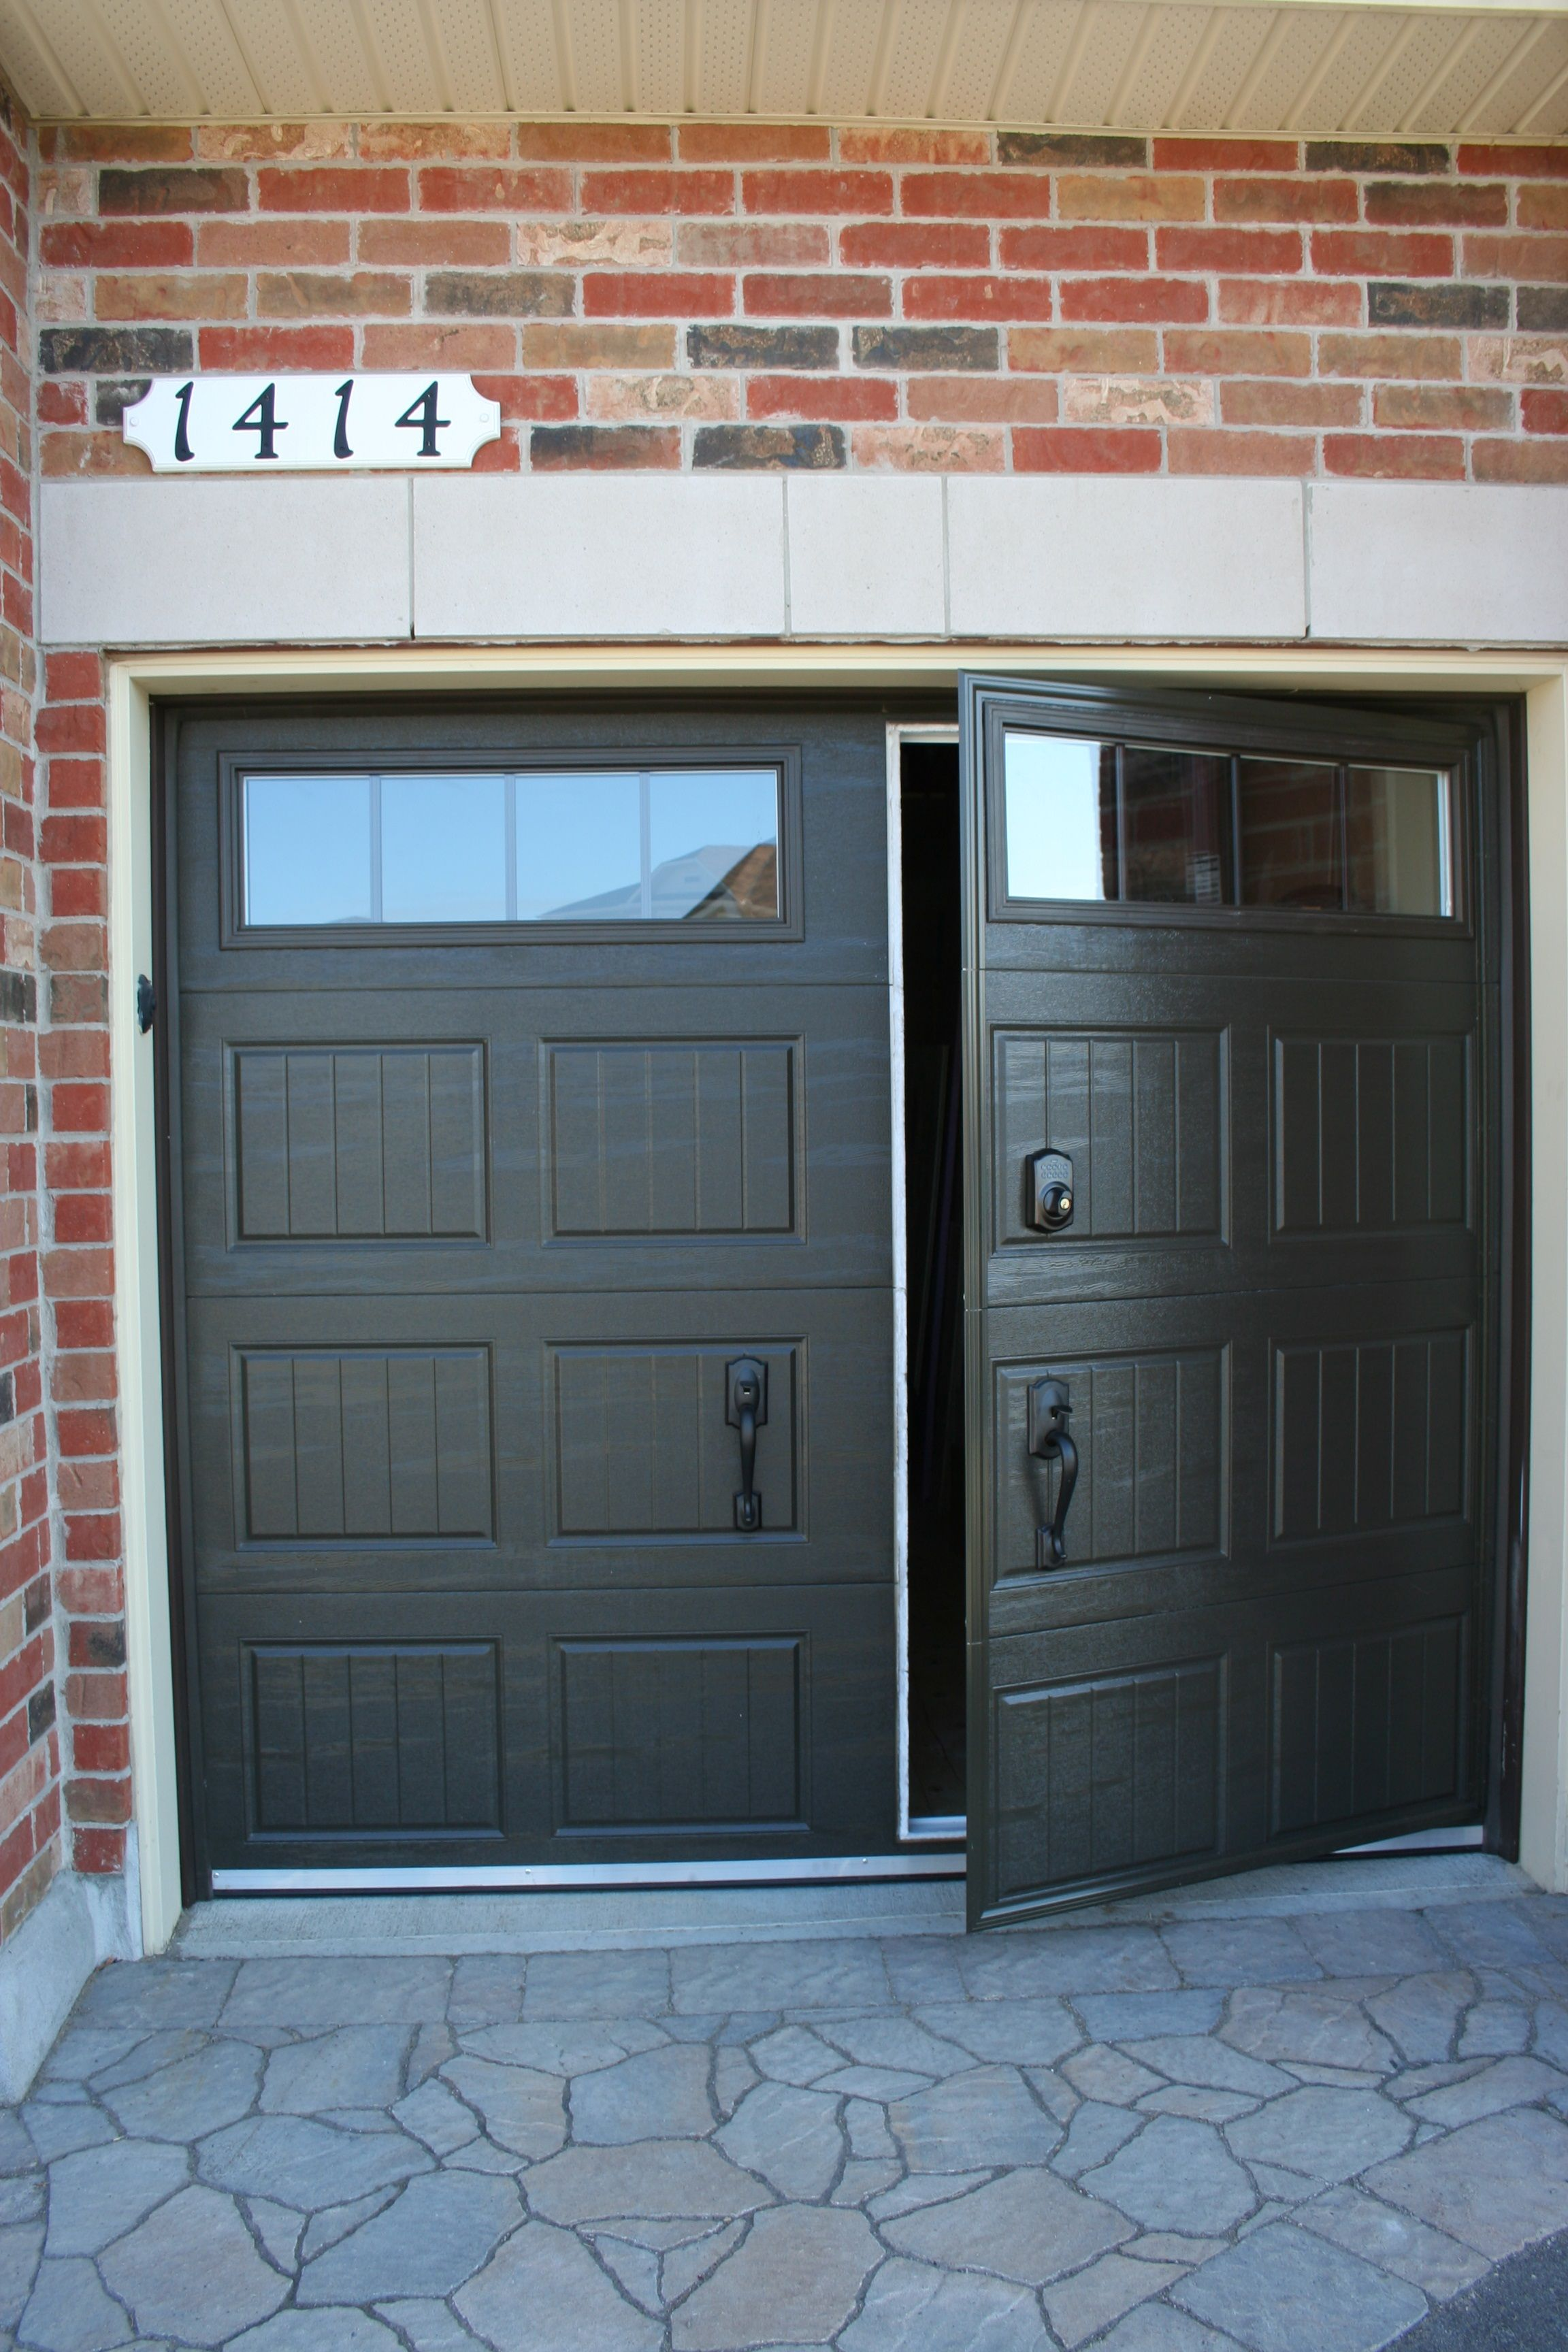 Residential Walk Through Garage Door Installation Repair Hudson Valley D D Doors Garage Doors Garage To Living Space Garage Door Installation